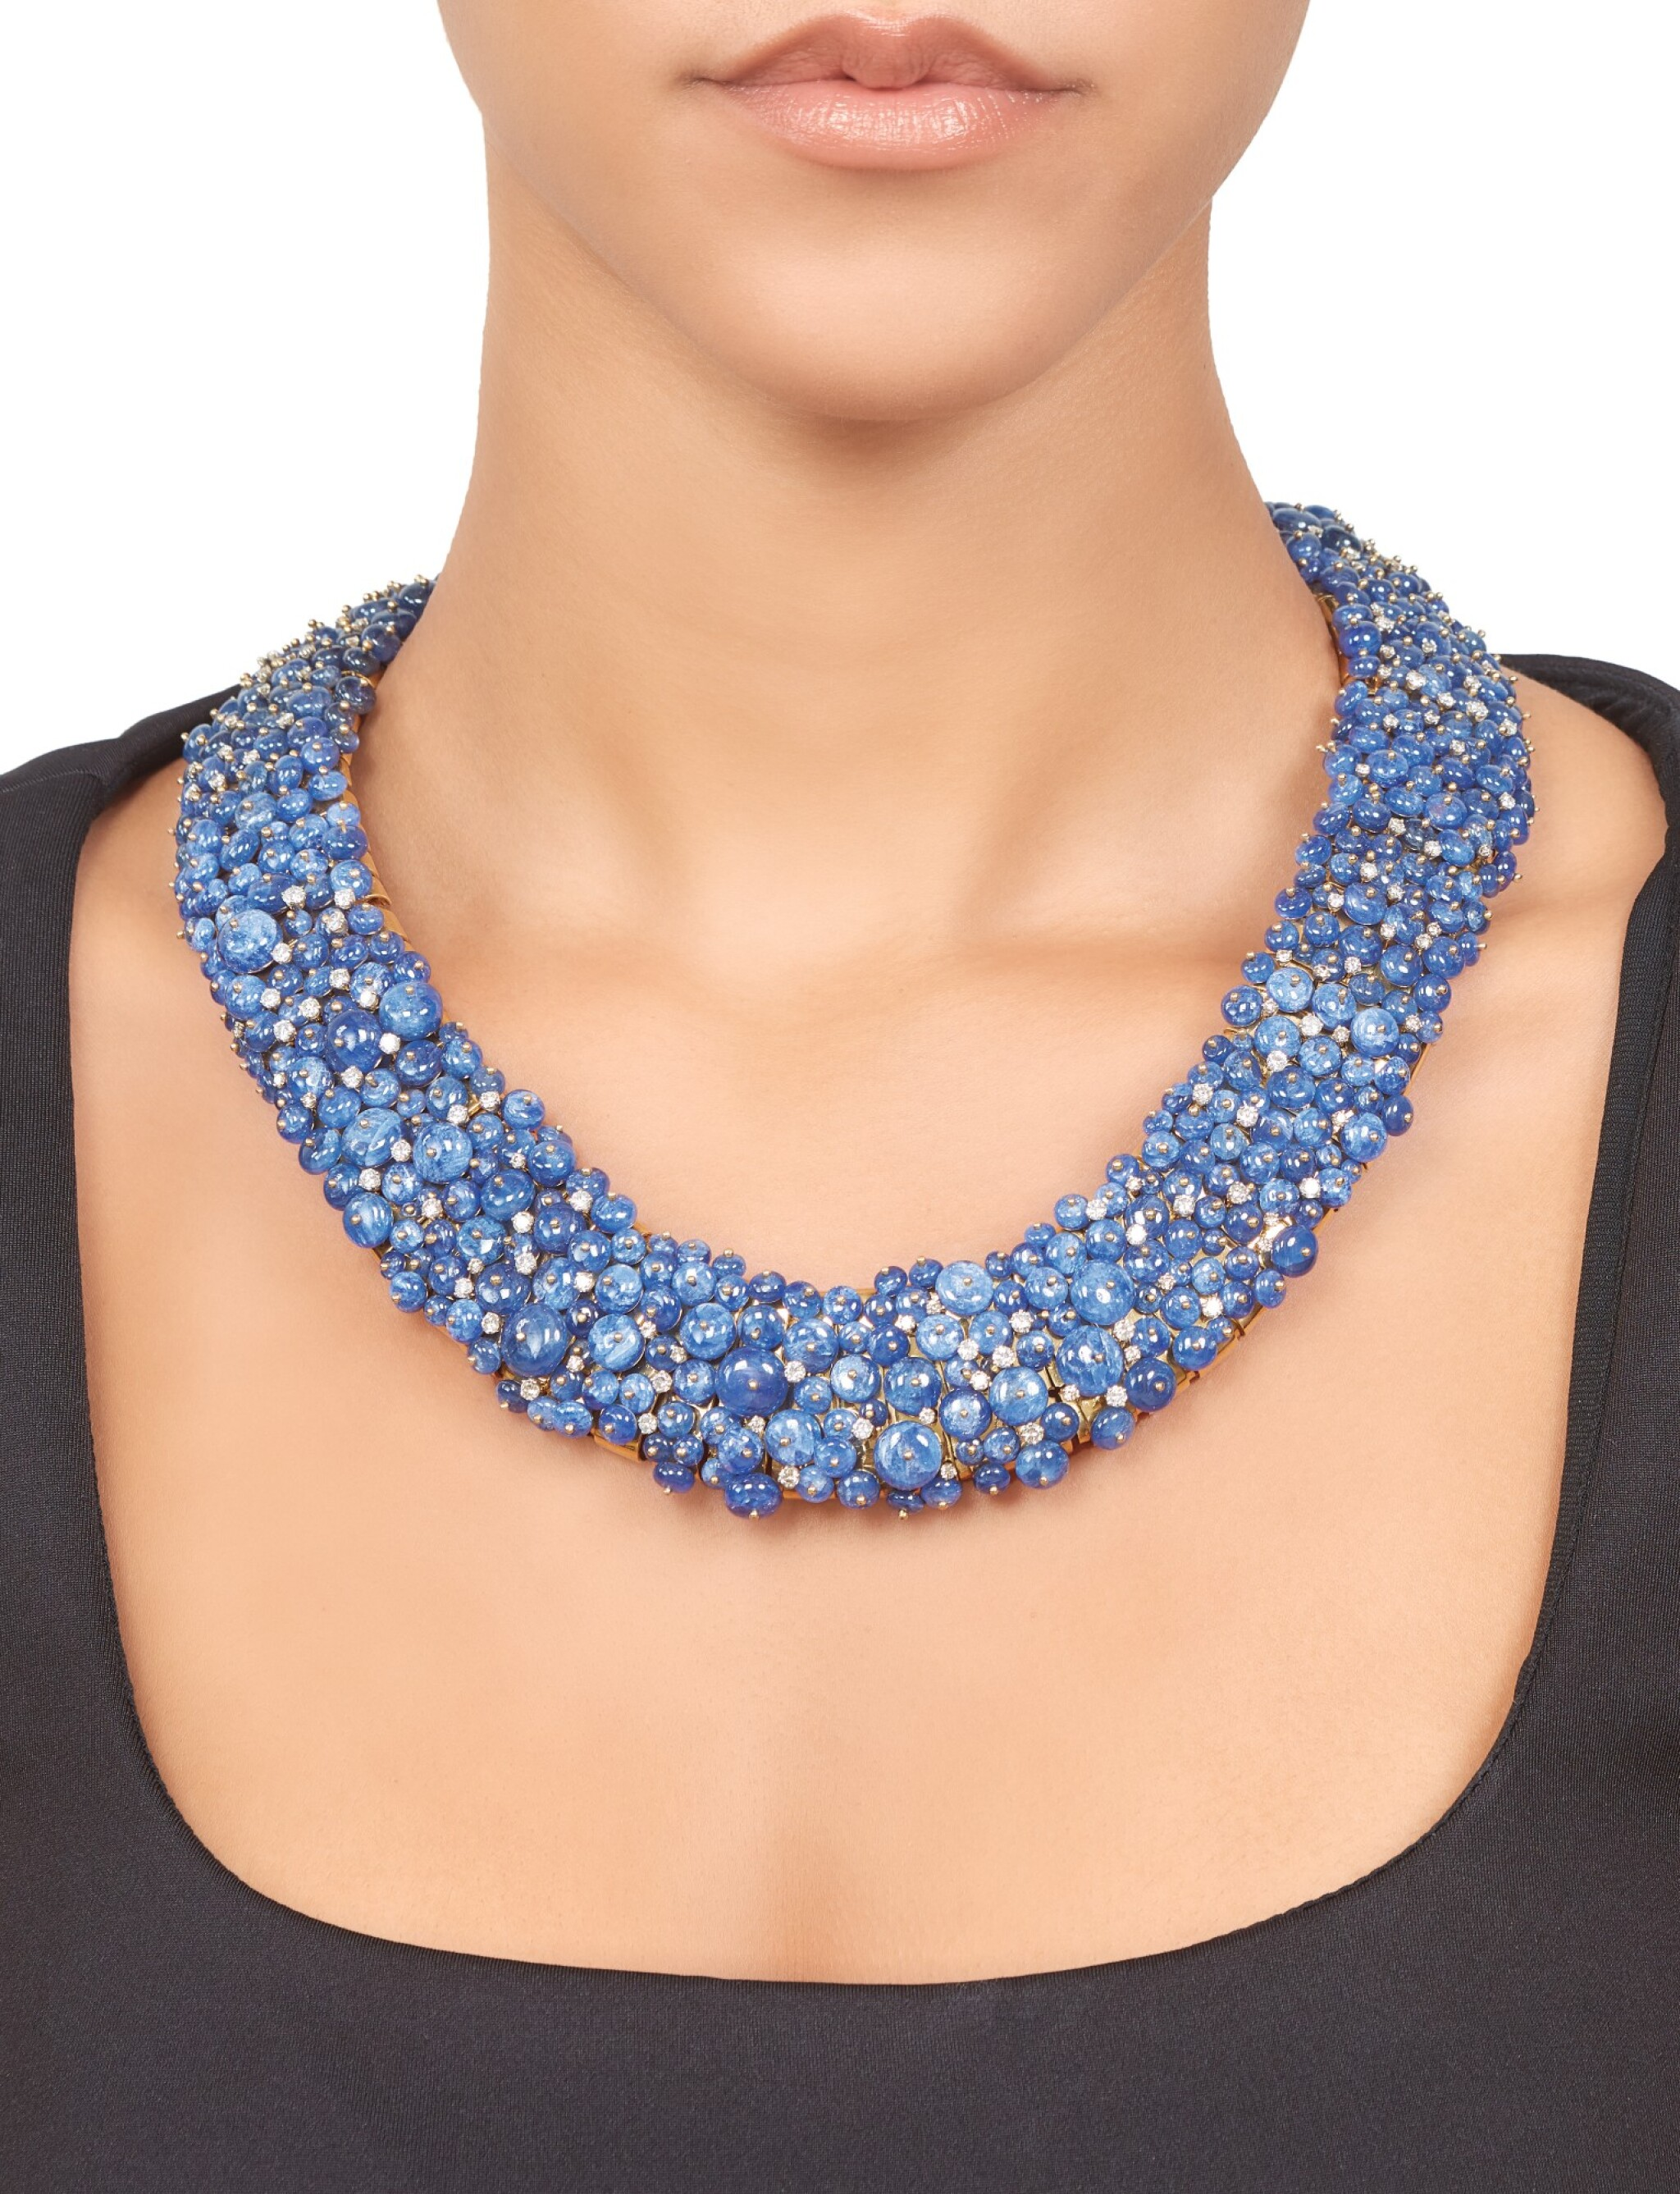 View 1 of Lot 301. Tony Duquette | Sapphire and Diamond Necklace .